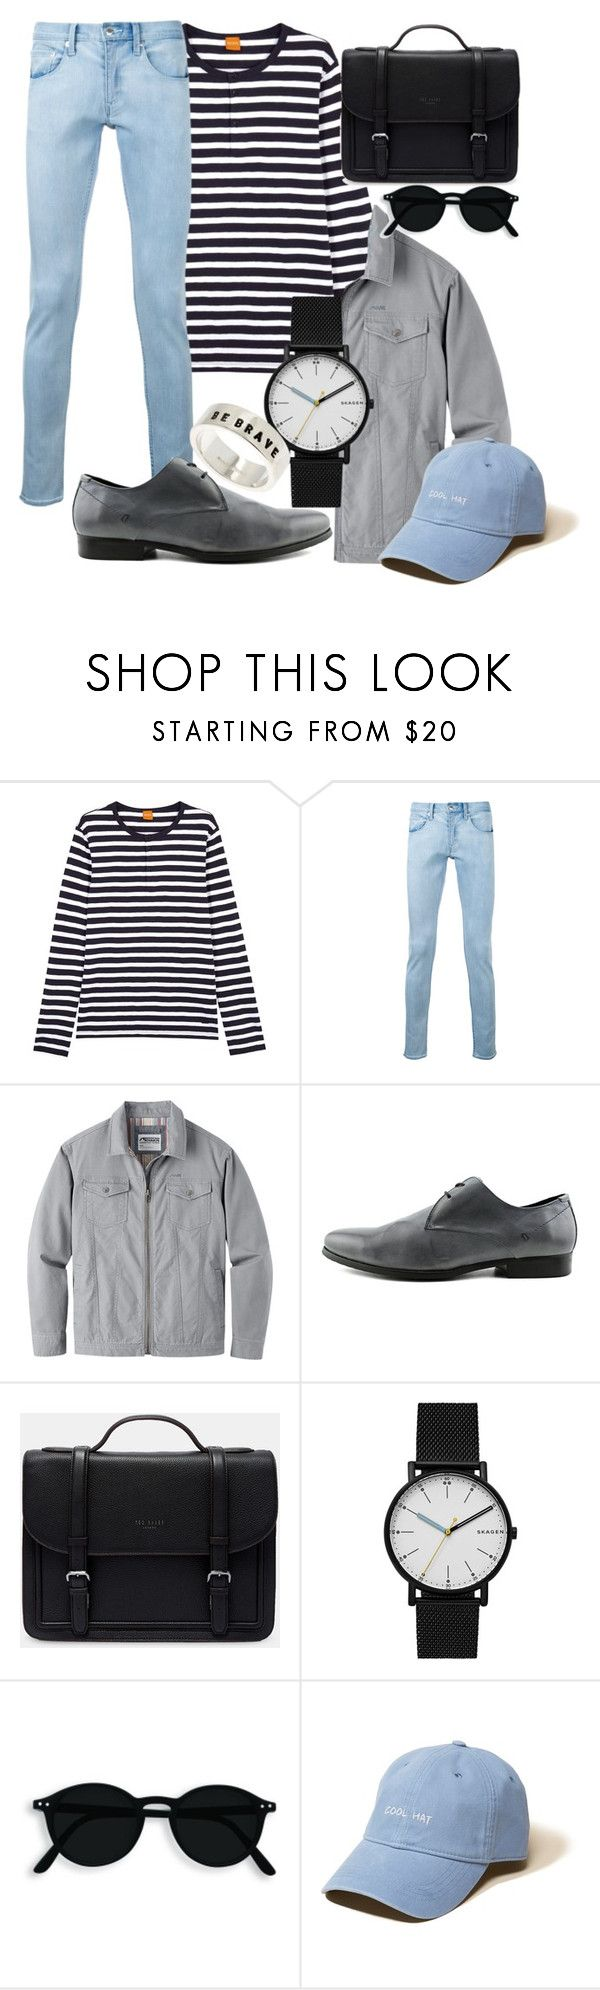 """""""Untitled #52"""" by plain-noodle on Polyvore featuring BOSS Orange, monkey time, Mountain Khakis, ALDO, Ted Baker, Skagen, Hollister Co. and Gioielli Corsini"""